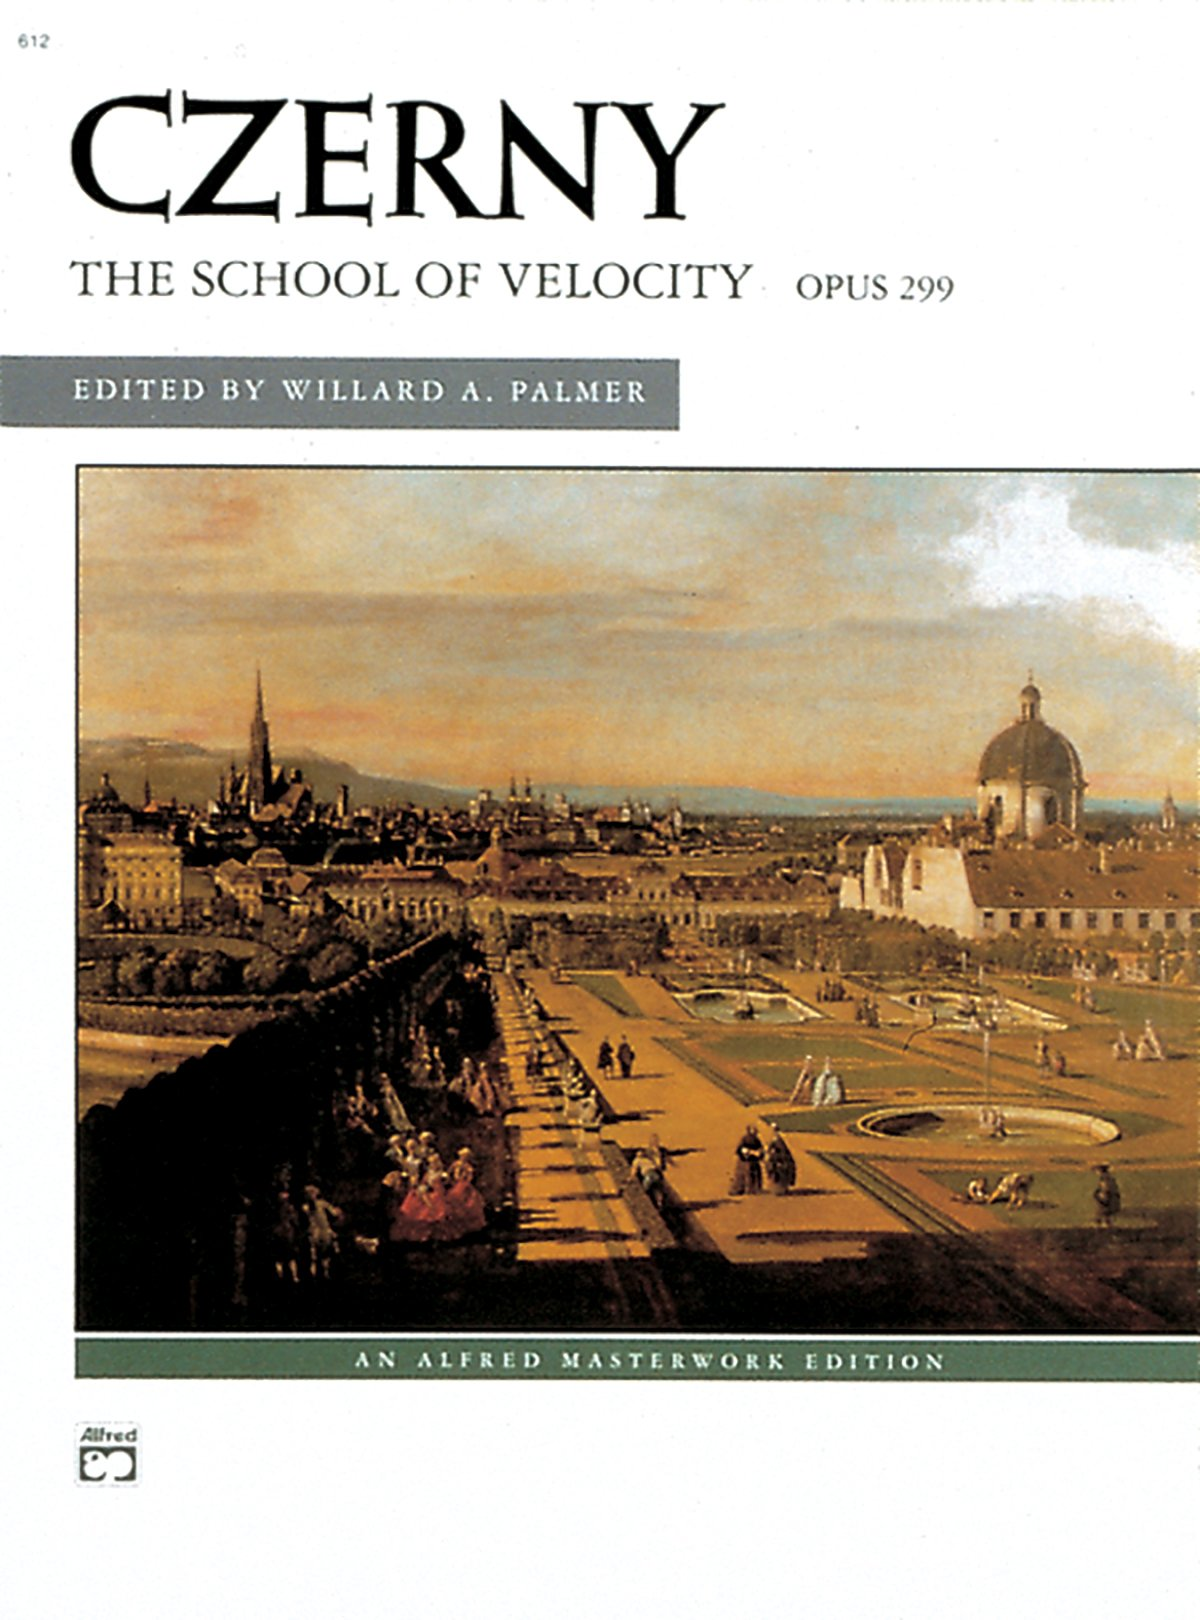 Czerny: The School of Velocity, Opus 299 for the Piano